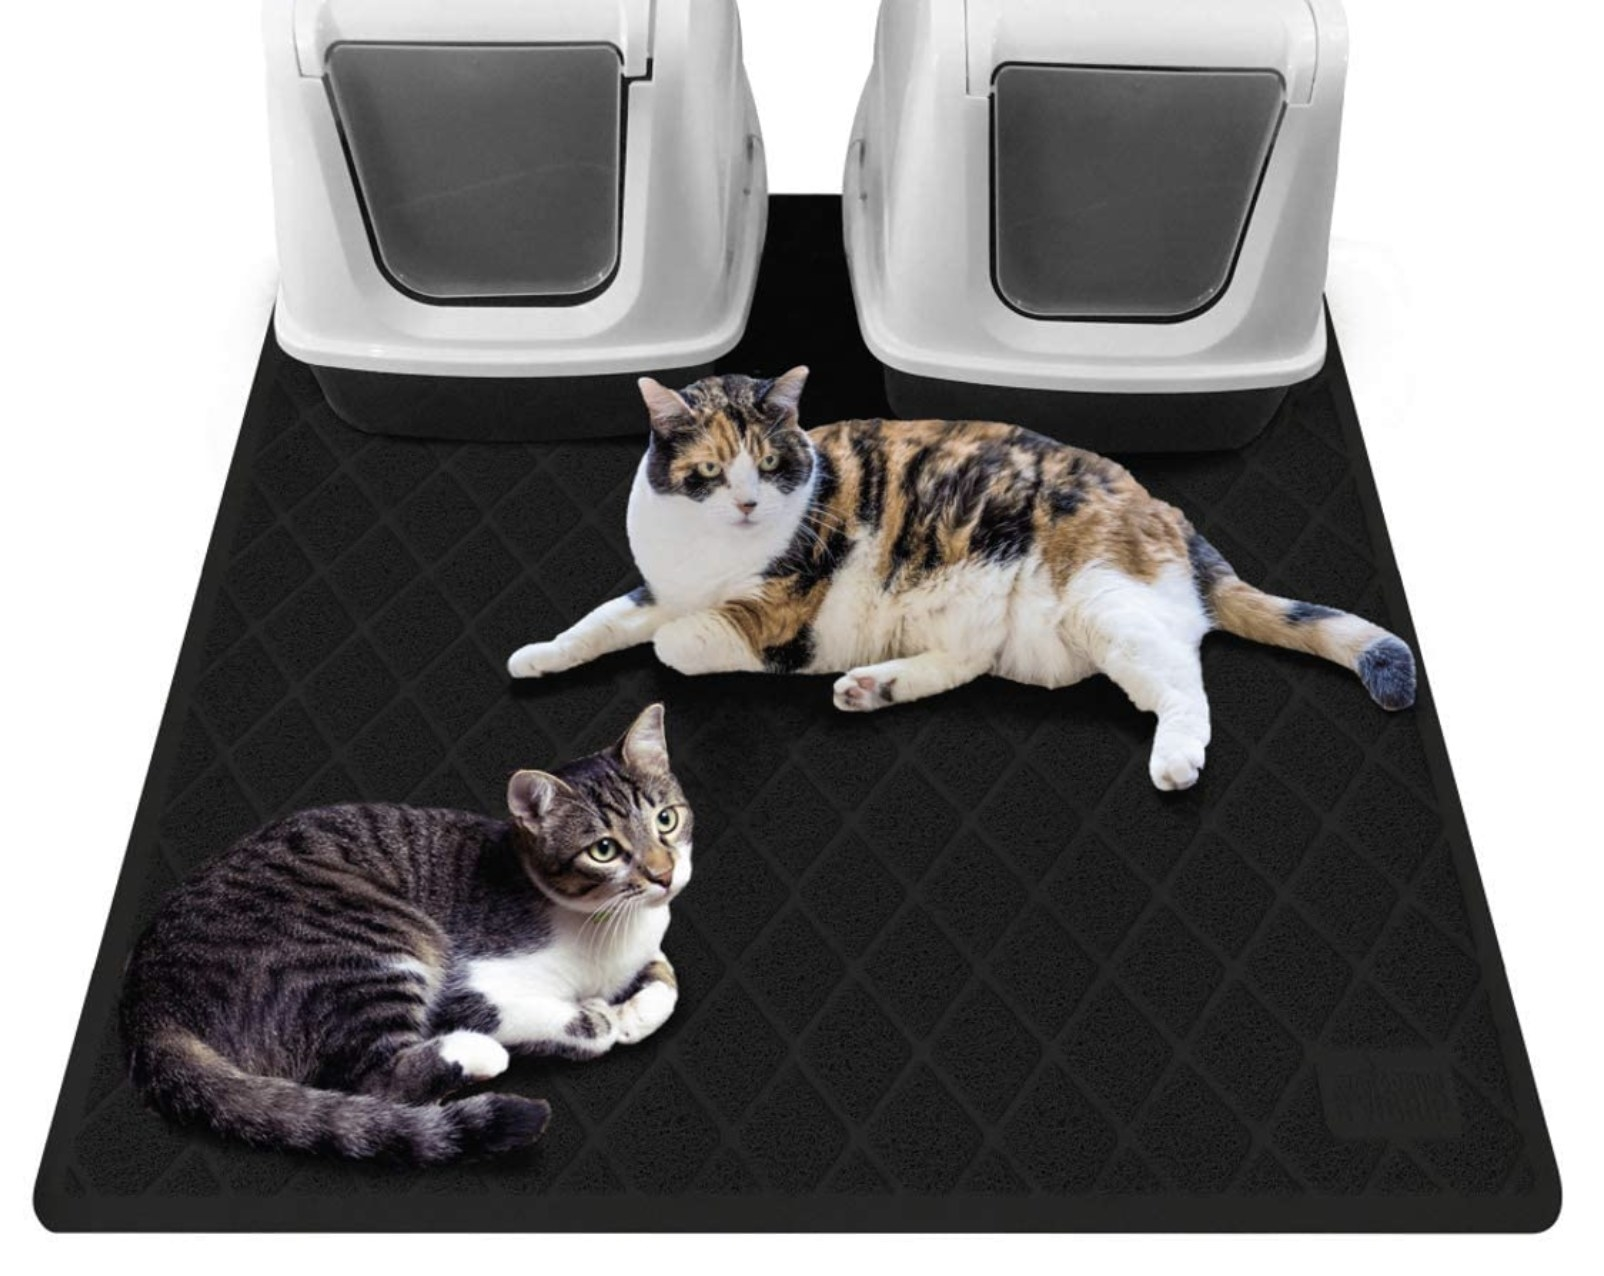 two cats sitting on a black litter trap mat